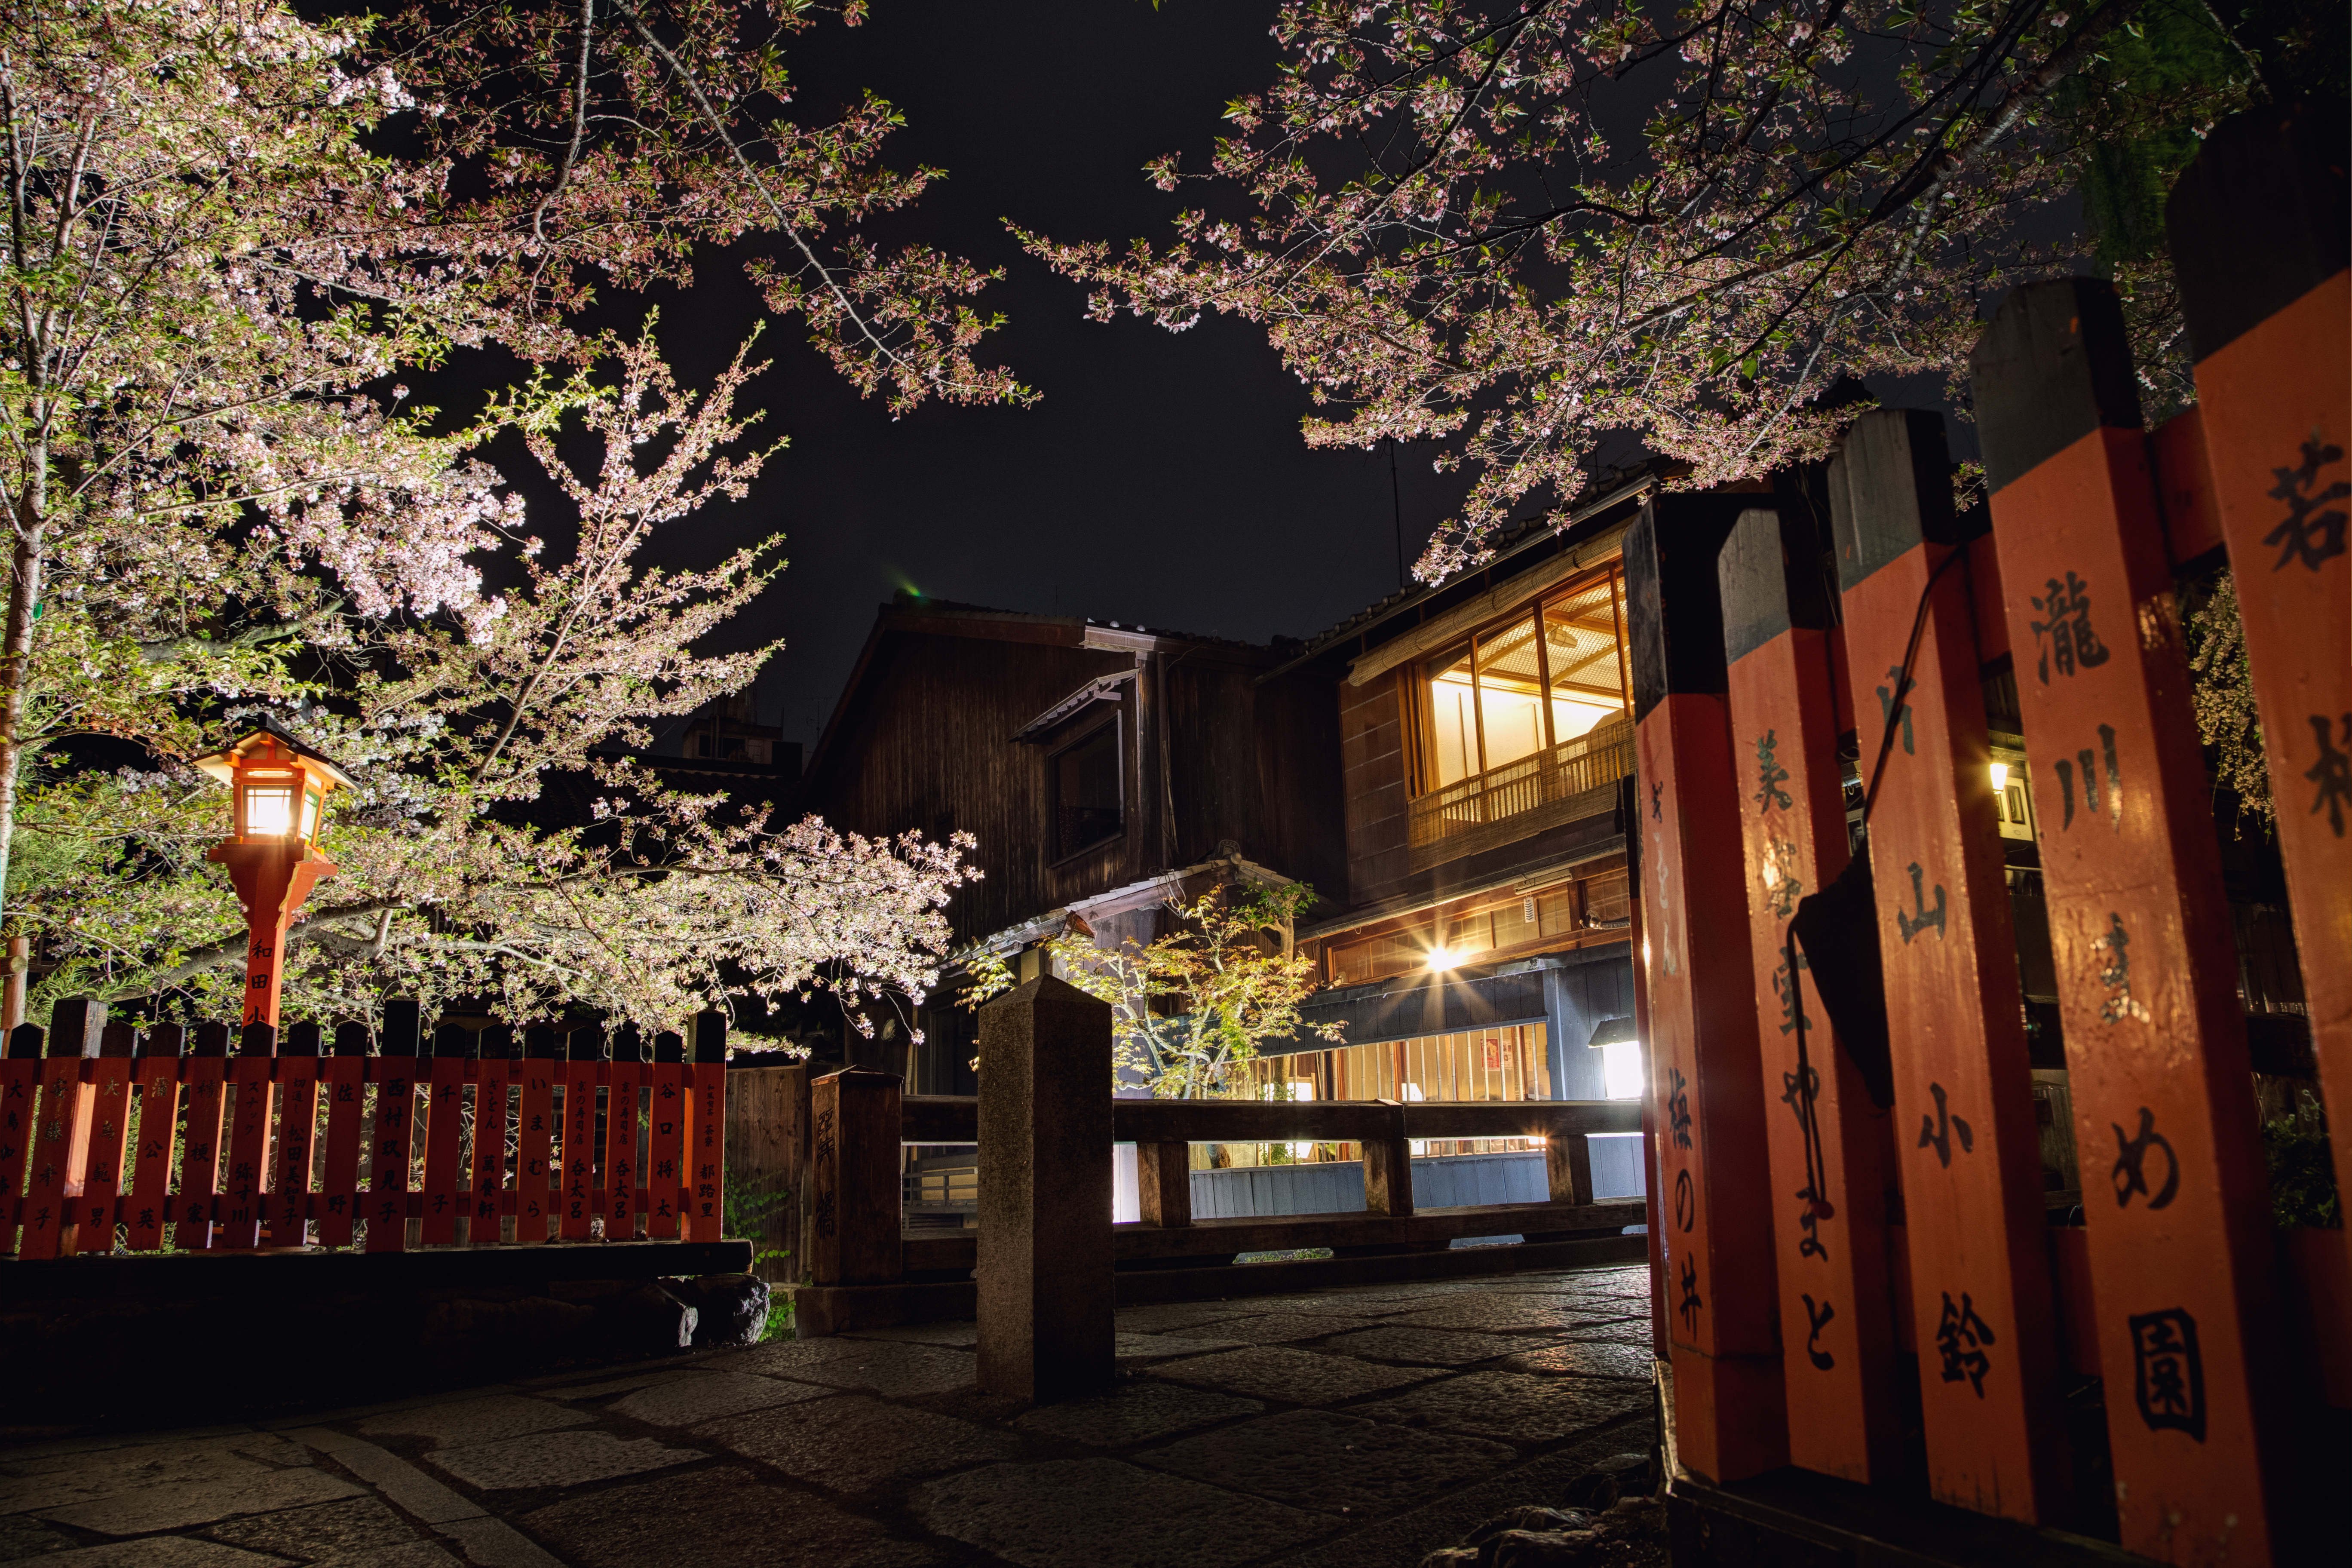 A night in gion photo